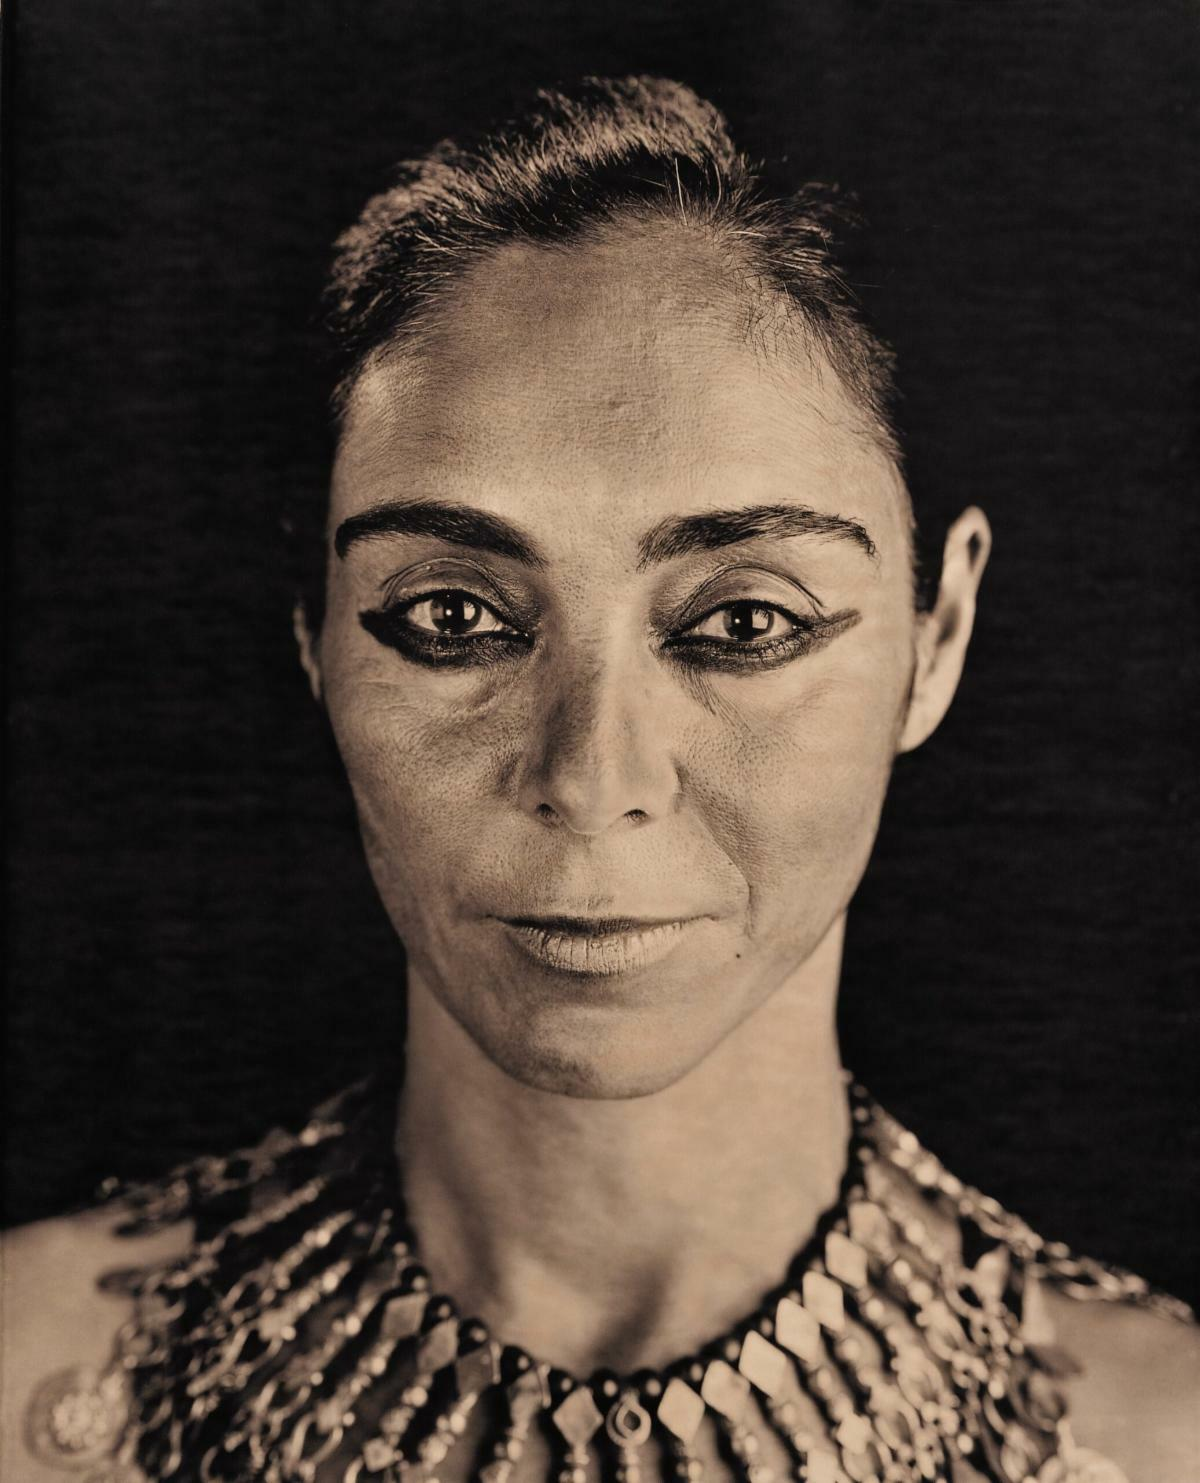 Photographer and filmmaker Shirin Neshat.